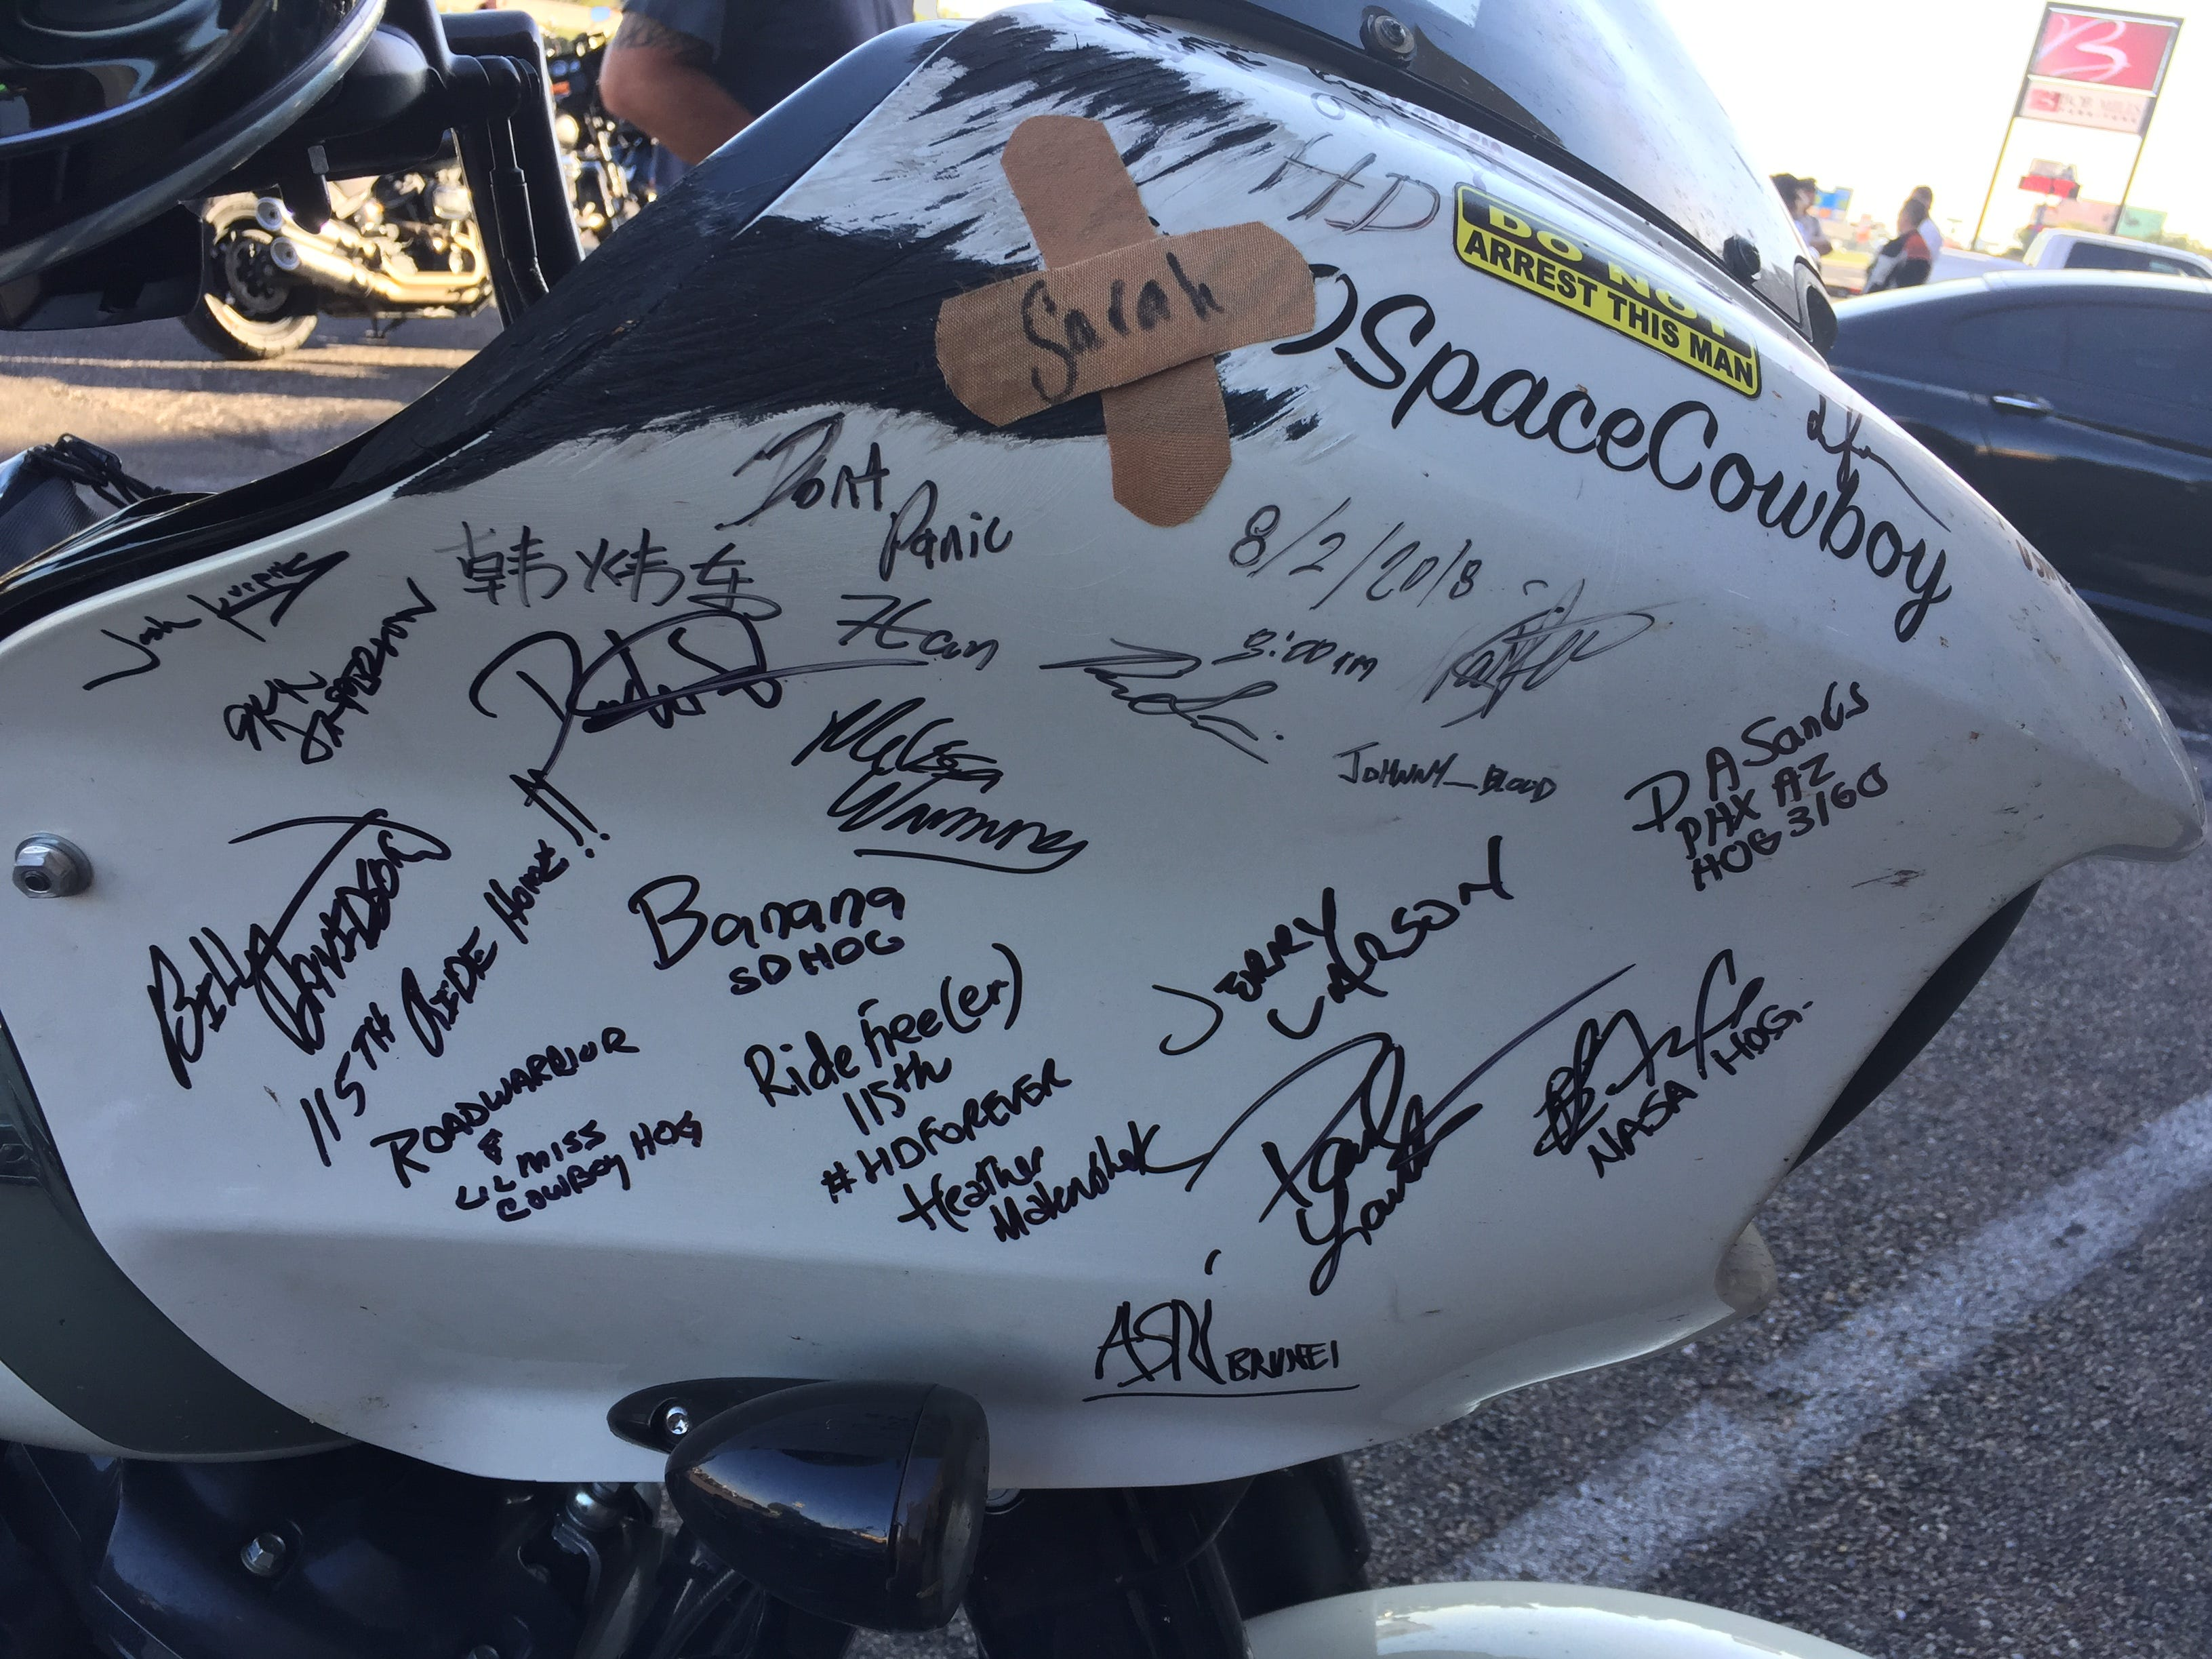 Signature of riders cover the gas tank of a motorcycle.